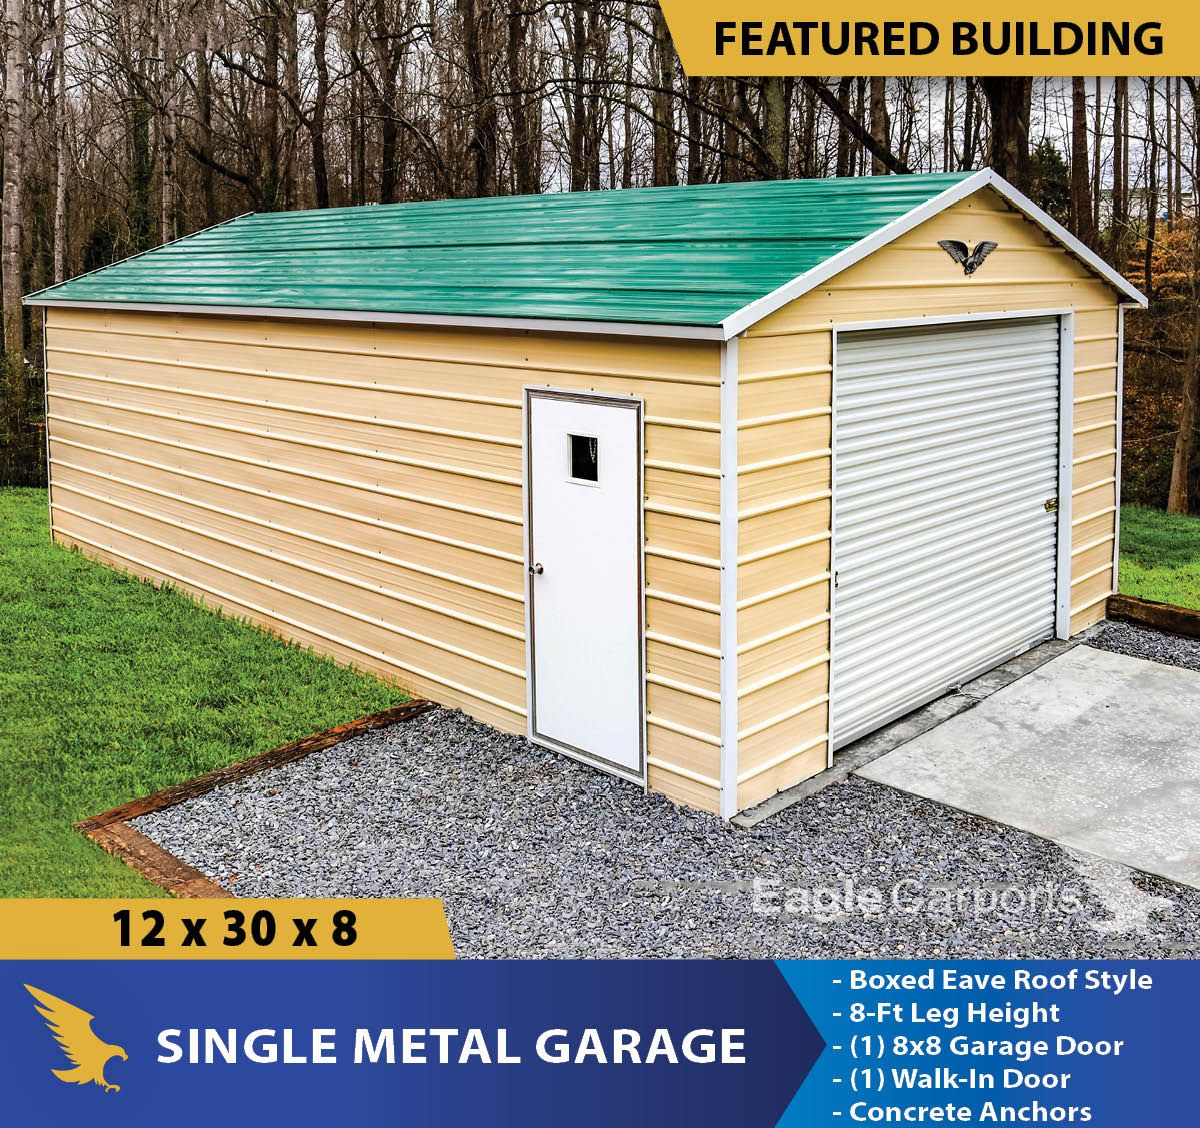 Garages In 2020 Roof Styles Metal Garages Metal Buildings